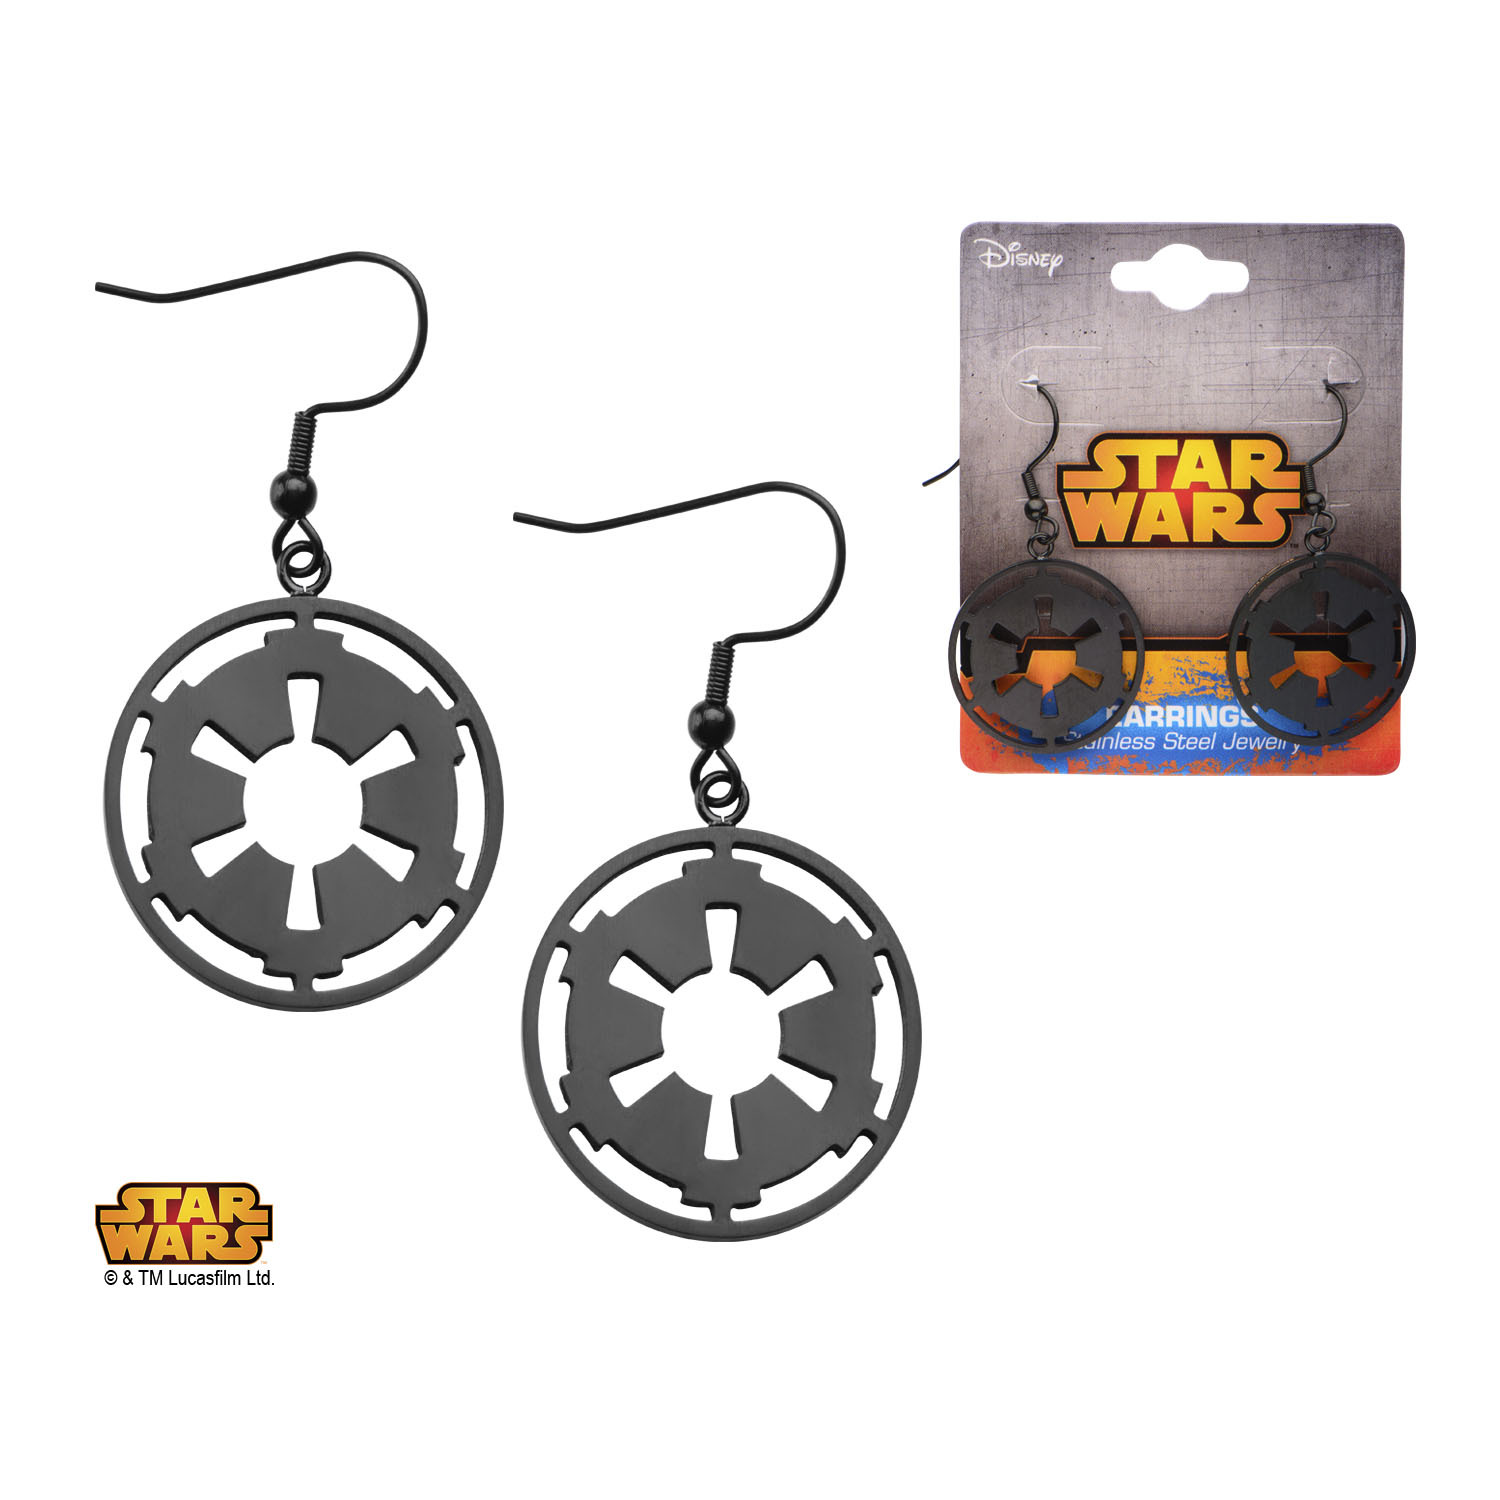 Star Wars Imperial Symbol Earrings image